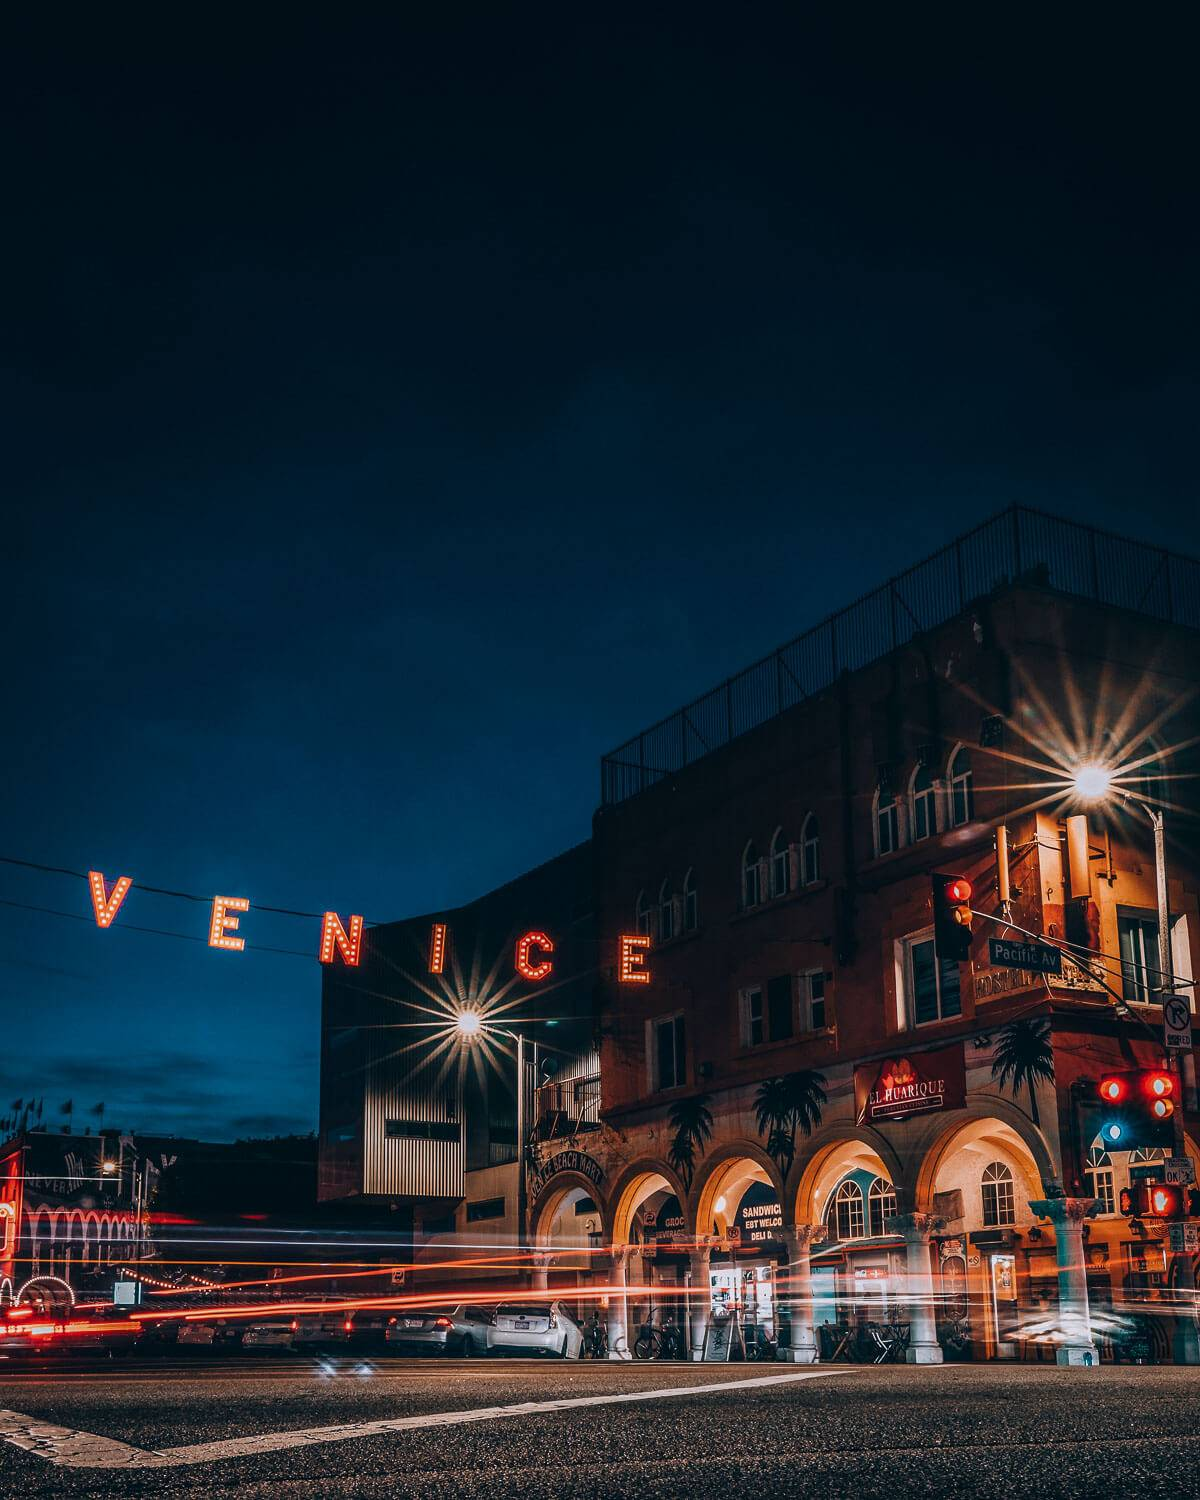 You might not think that Venice beach is one of the one of the places to explore at night in LA, but you'd be wrong. It should definitely be on your list of things to do in LA at night and during the day.